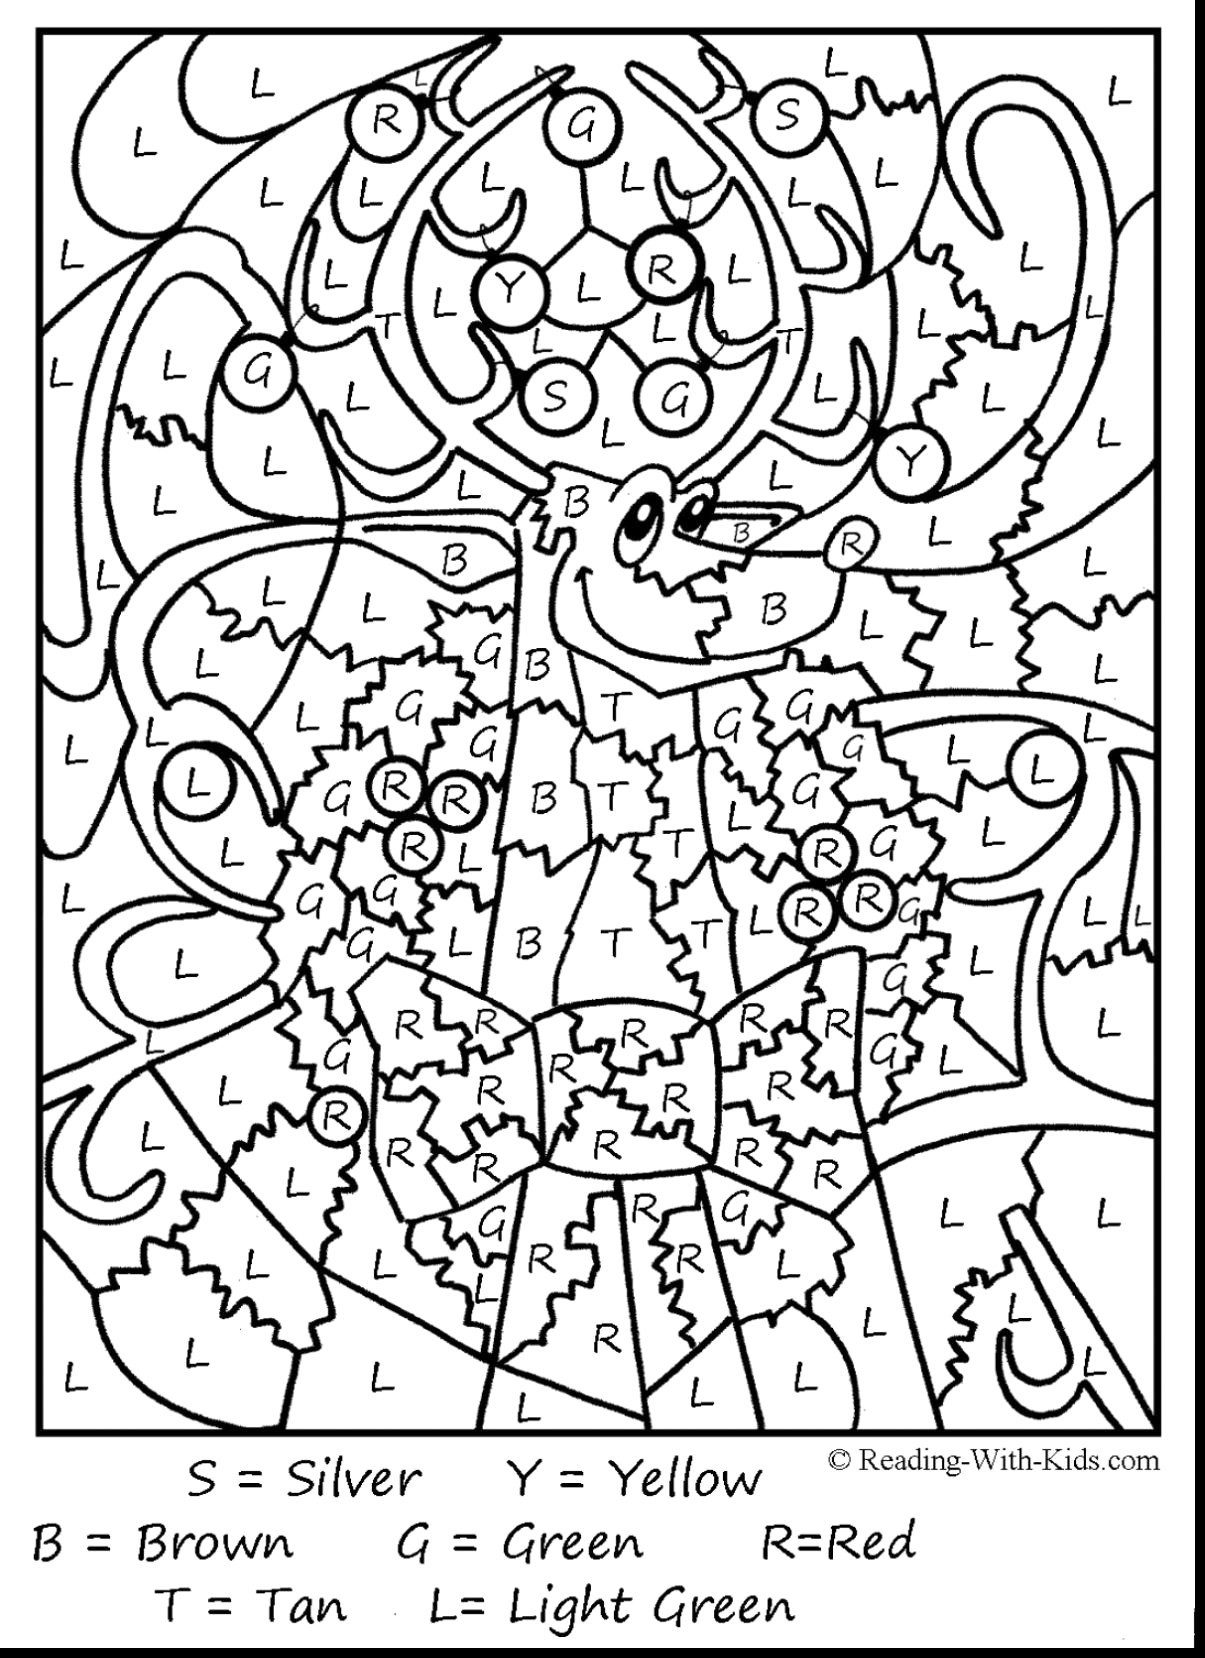 Christmas Coloring By Number With Color Pages Fresh Unique 1205 1658